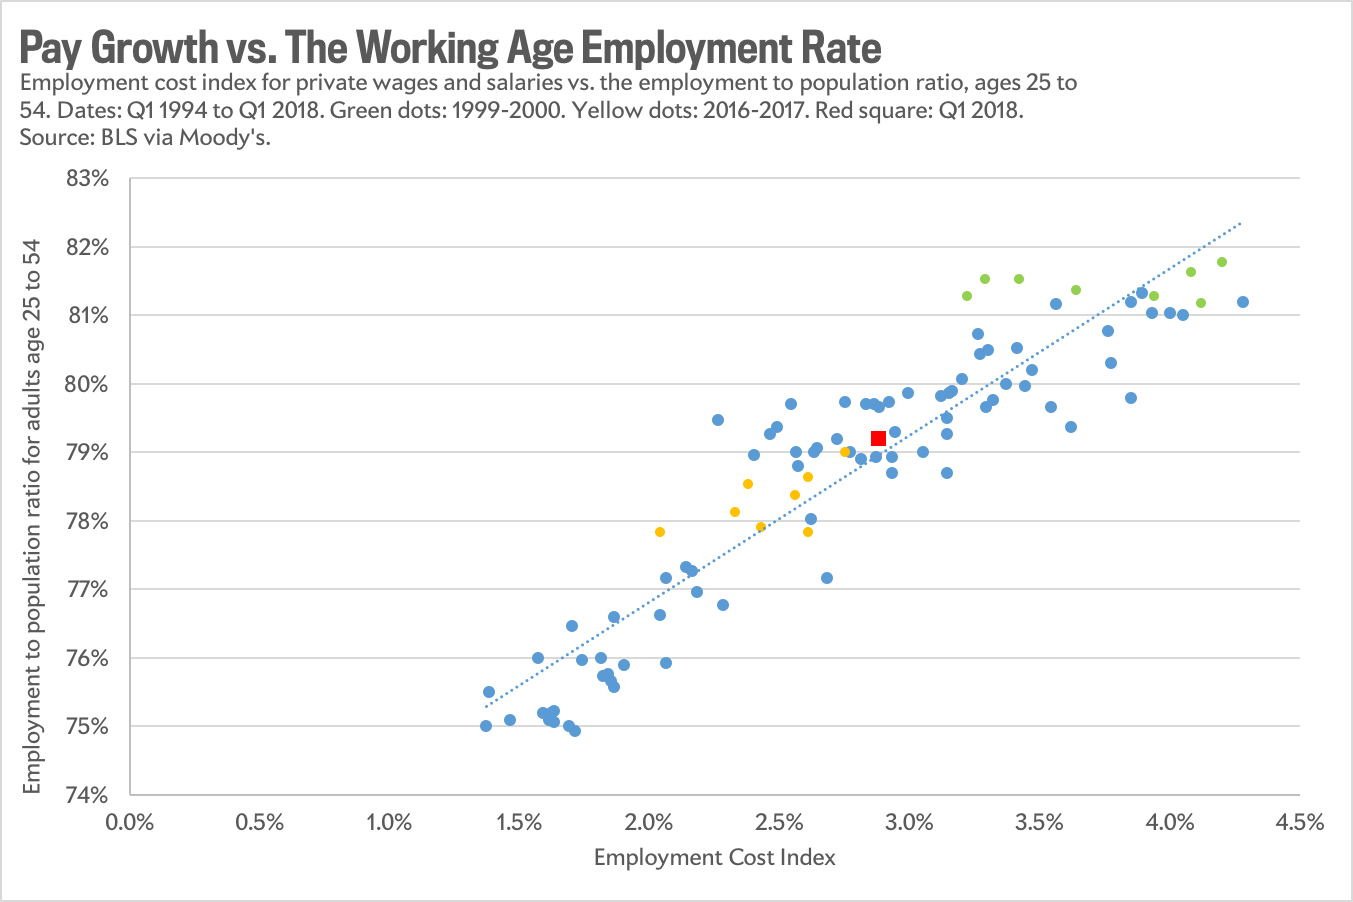 Working-age employment rate vs. pay